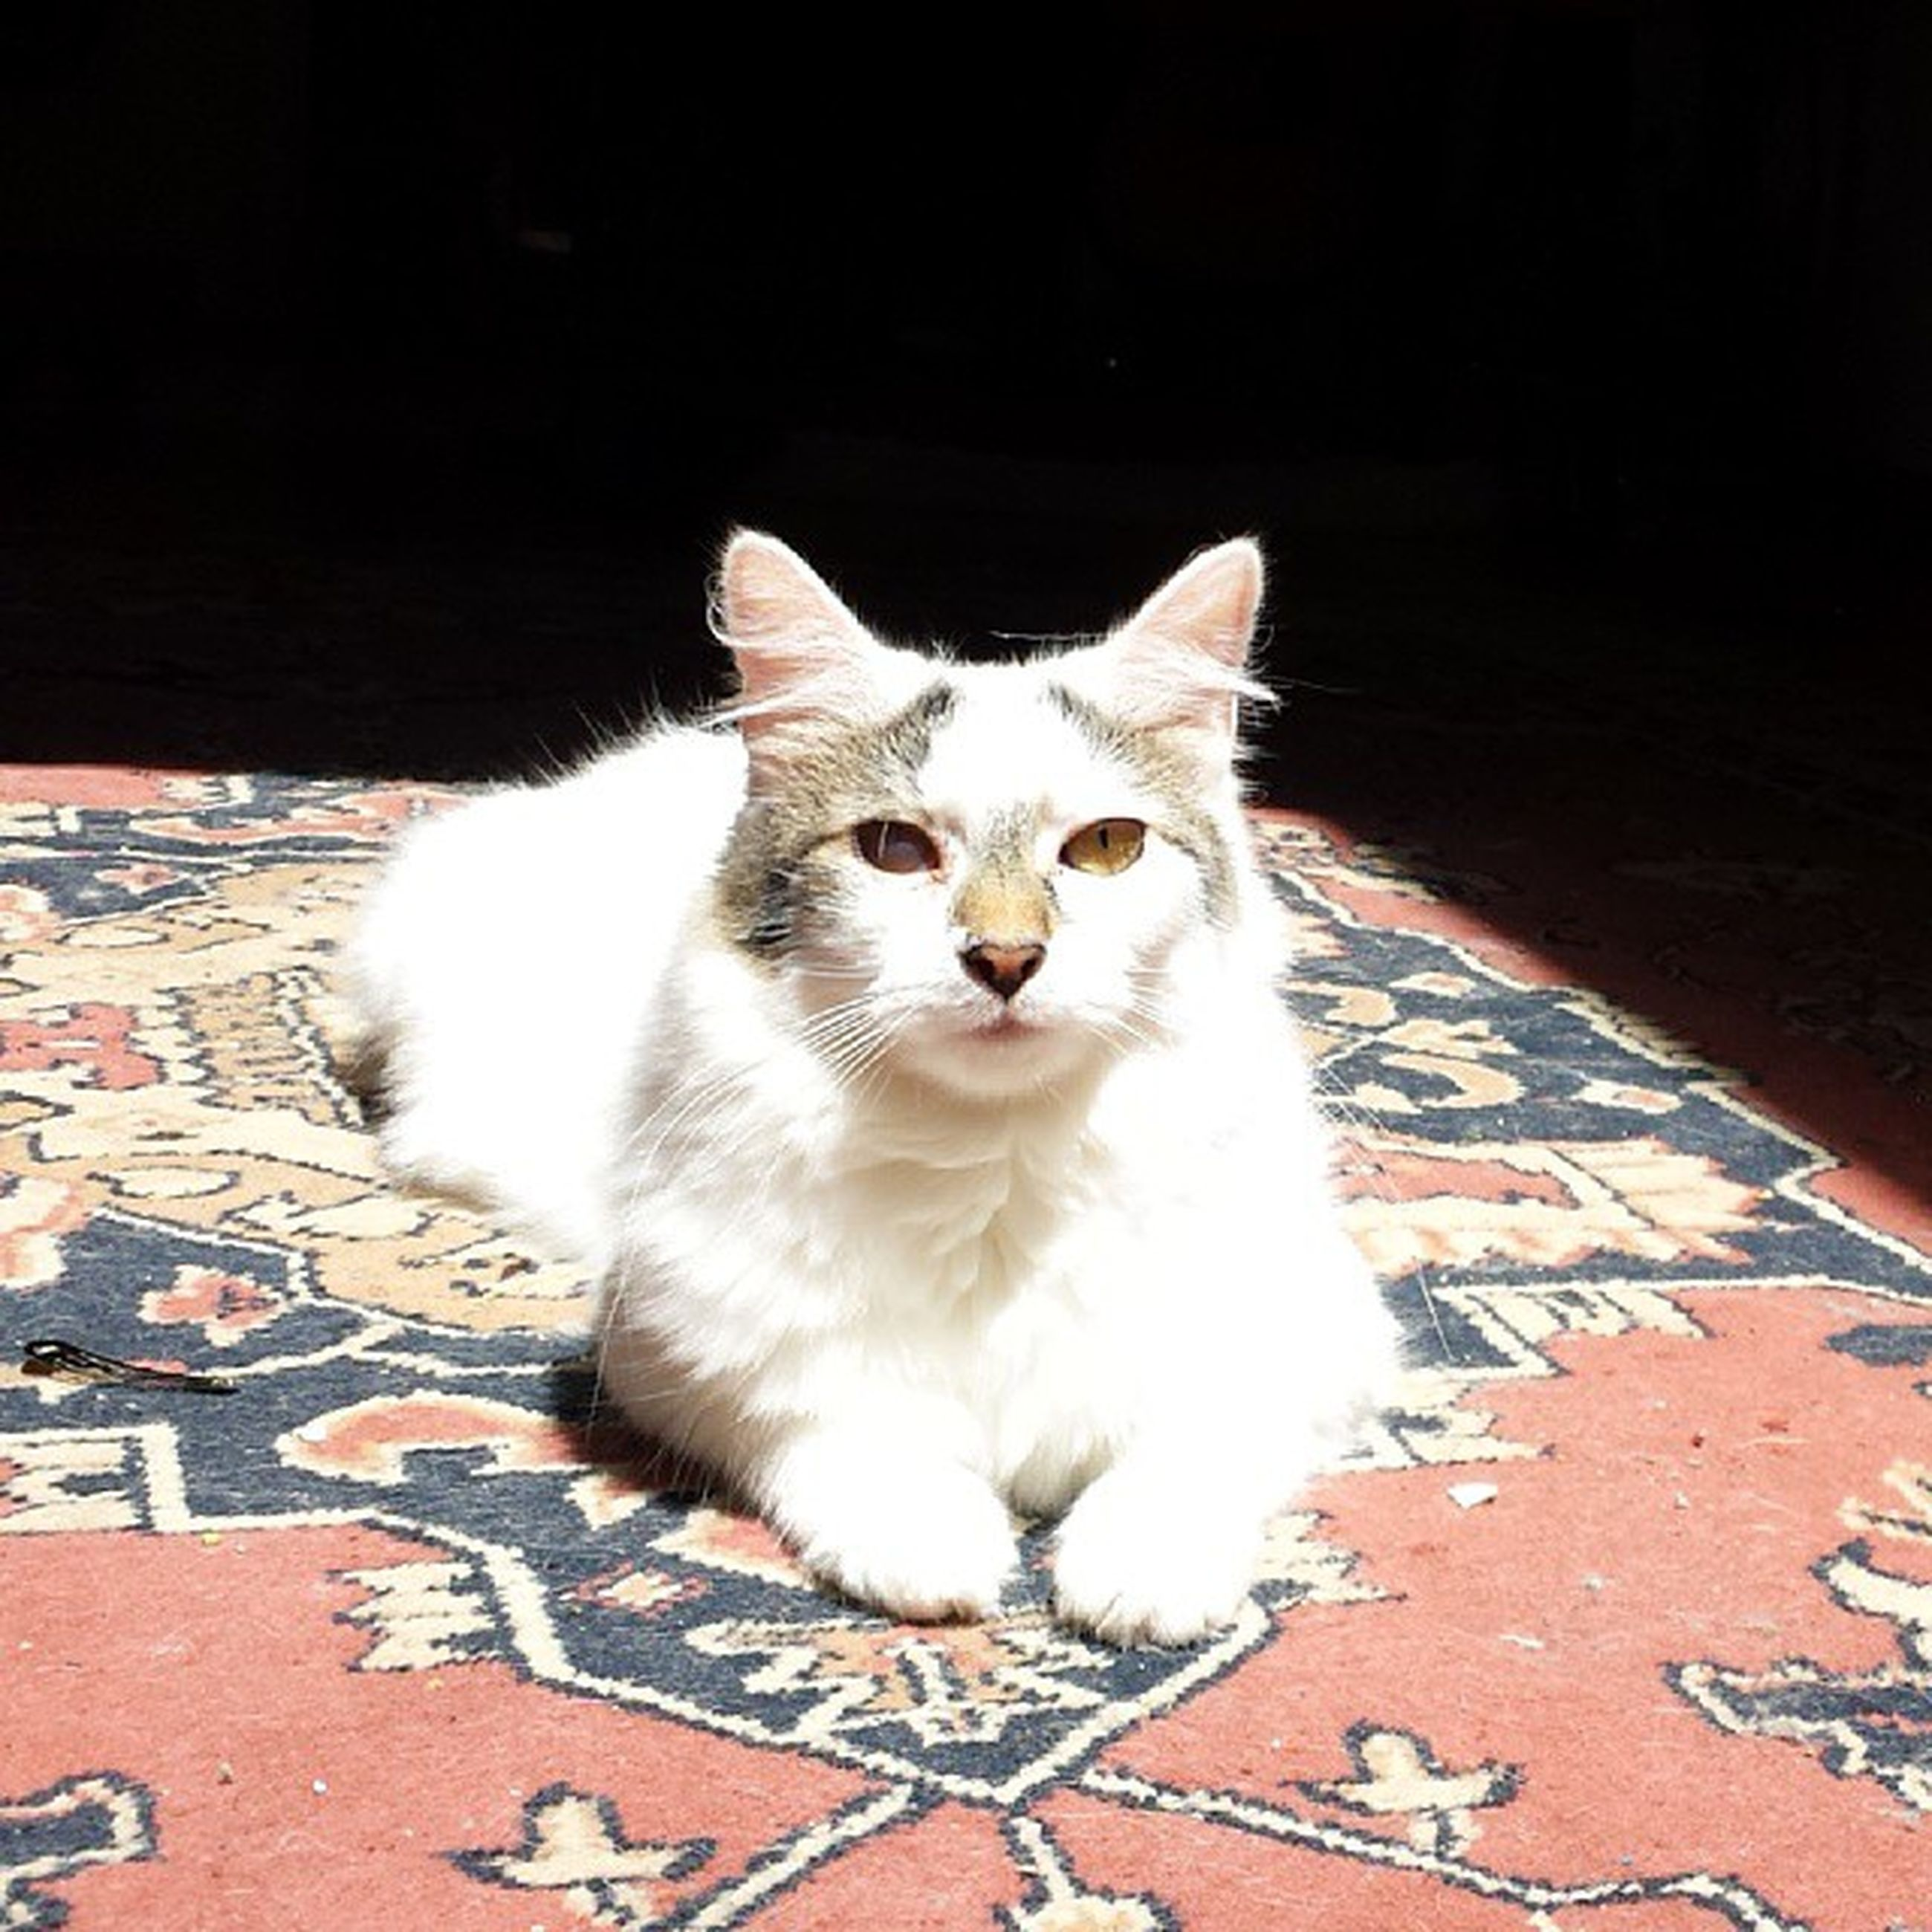 domestic cat, domestic animals, pets, cat, animal themes, one animal, feline, mammal, whisker, portrait, looking at camera, relaxation, white color, alertness, indoors, high angle view, sitting, close-up, no people